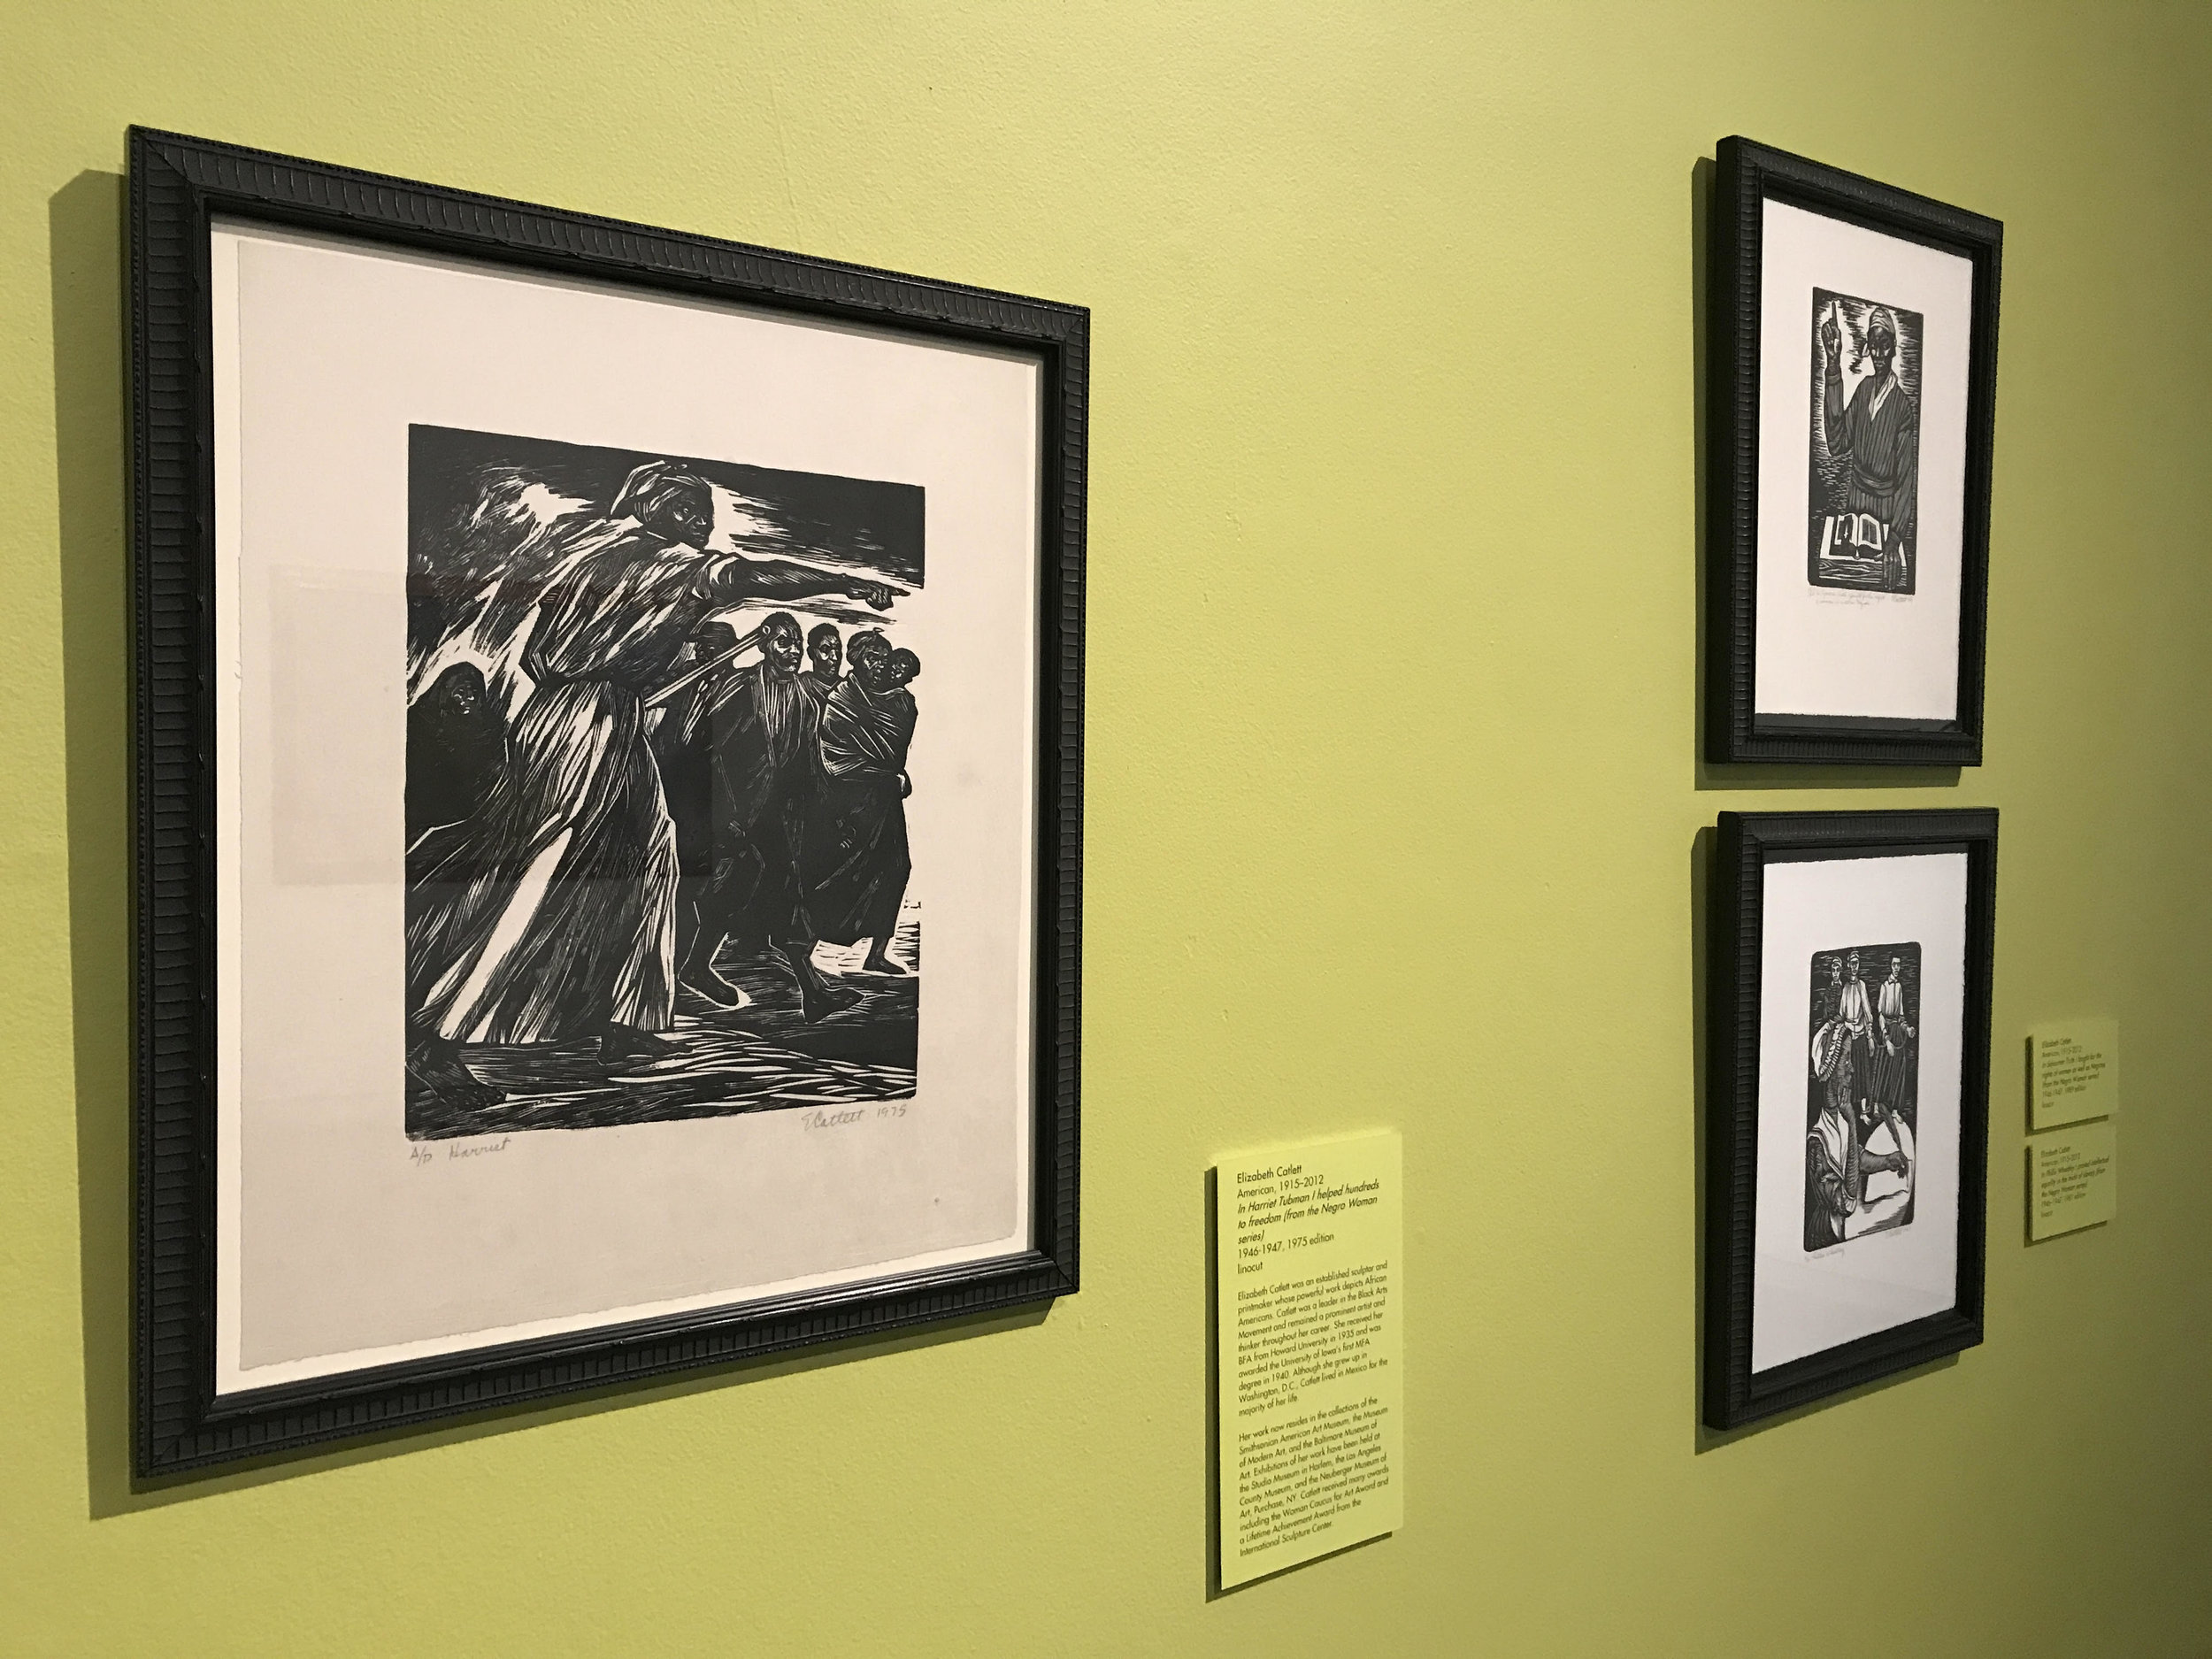 All linocuts by Elizabeth Catlett.Left: In Harriet Tubman I helped hundreds to freedom  (from the Negro Woman series),1946–1947, 1975 edition. Top right:  In Phillis Wheatley I proved intellectual equality in the midst of slavery  (from the Negro Woman series),1946–1947, 1981 edition.Bottom Right: In Sojouner Truth I fought for the rights of women as well as Negroes  (from the Negro Woman series),1946–1947, 1989 edition.